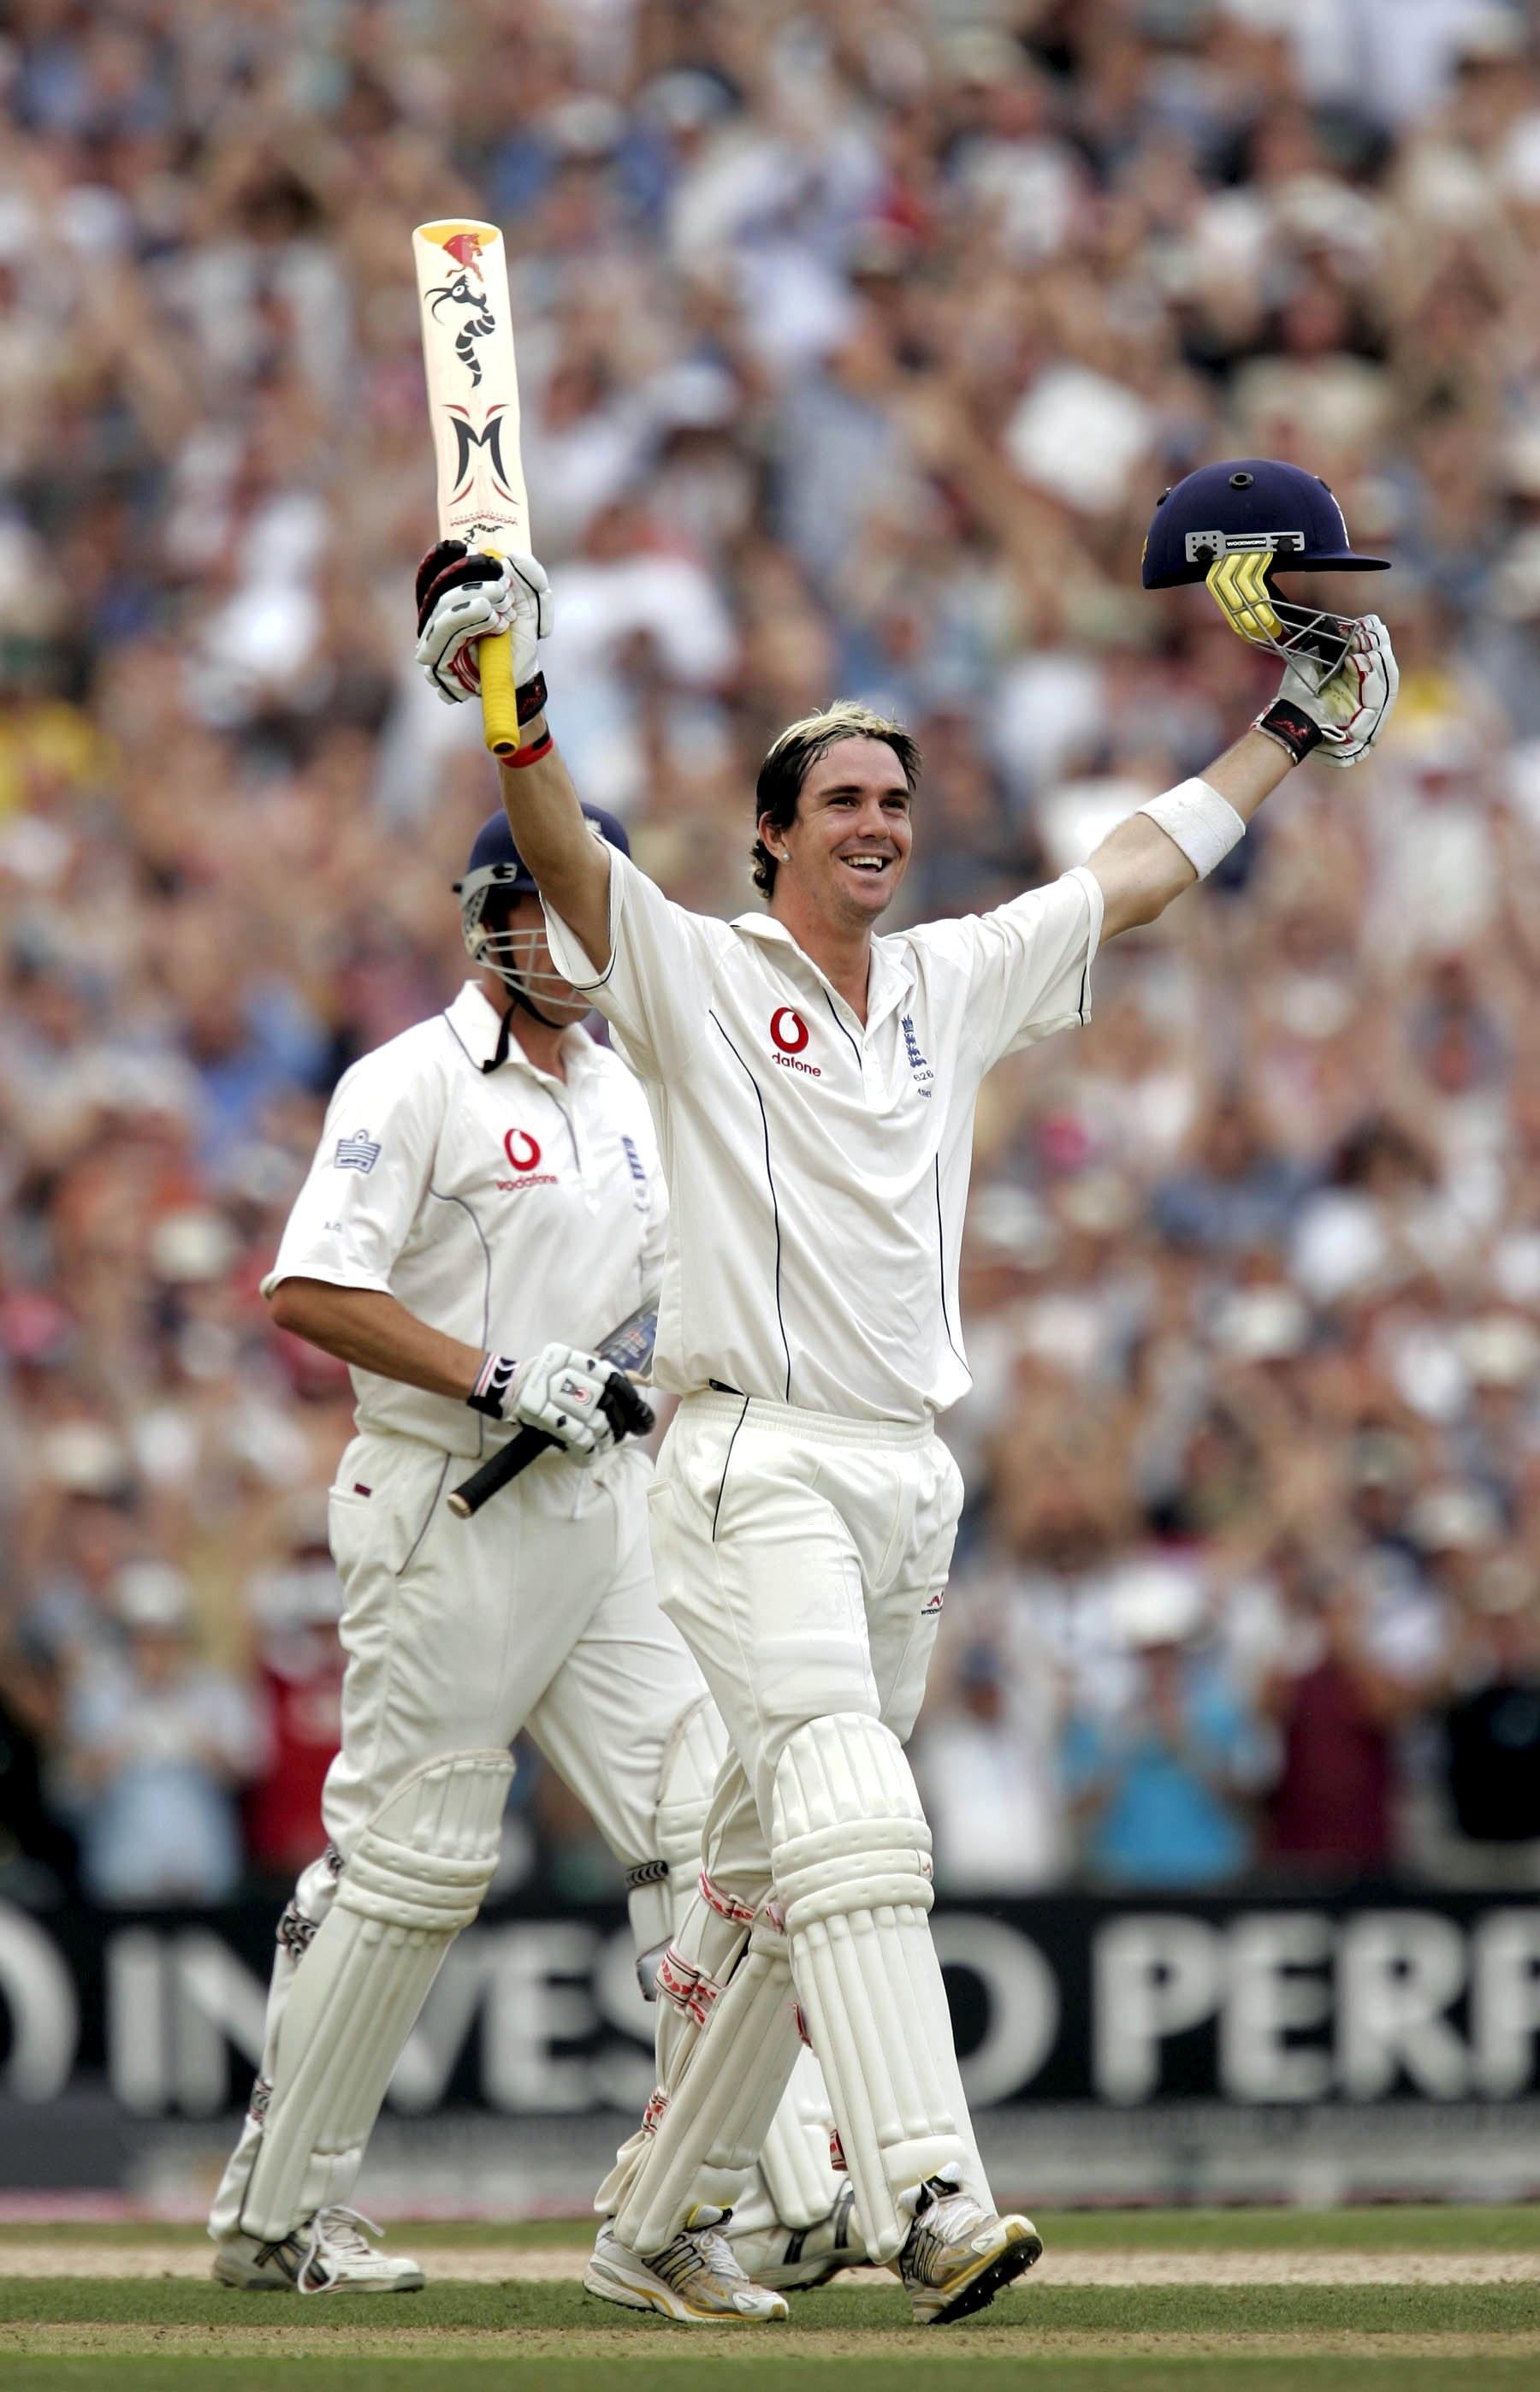 Kevin Pietersen helped England famously win the Ashes in 2005